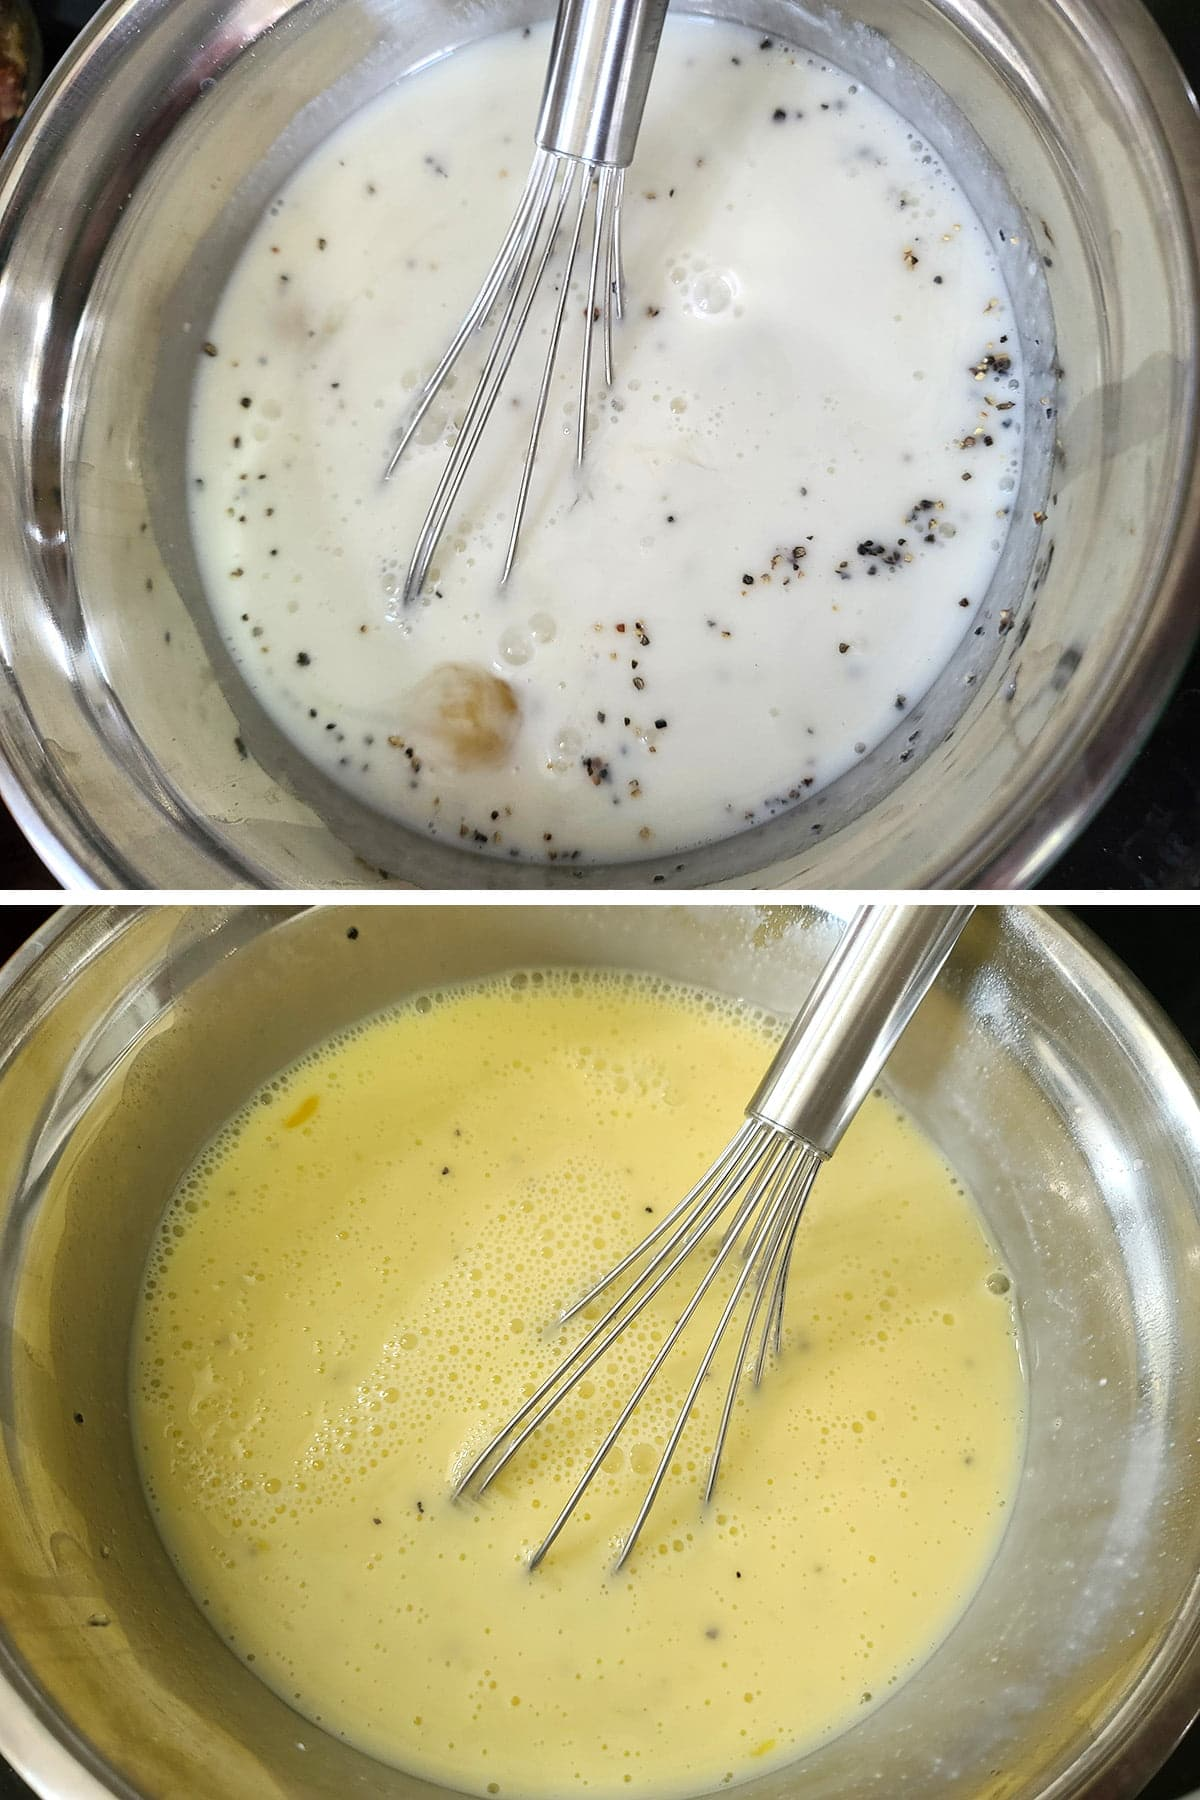 A two part compilation image showing a bowl of milk, pepper, and eggs, before and after being whisked together.